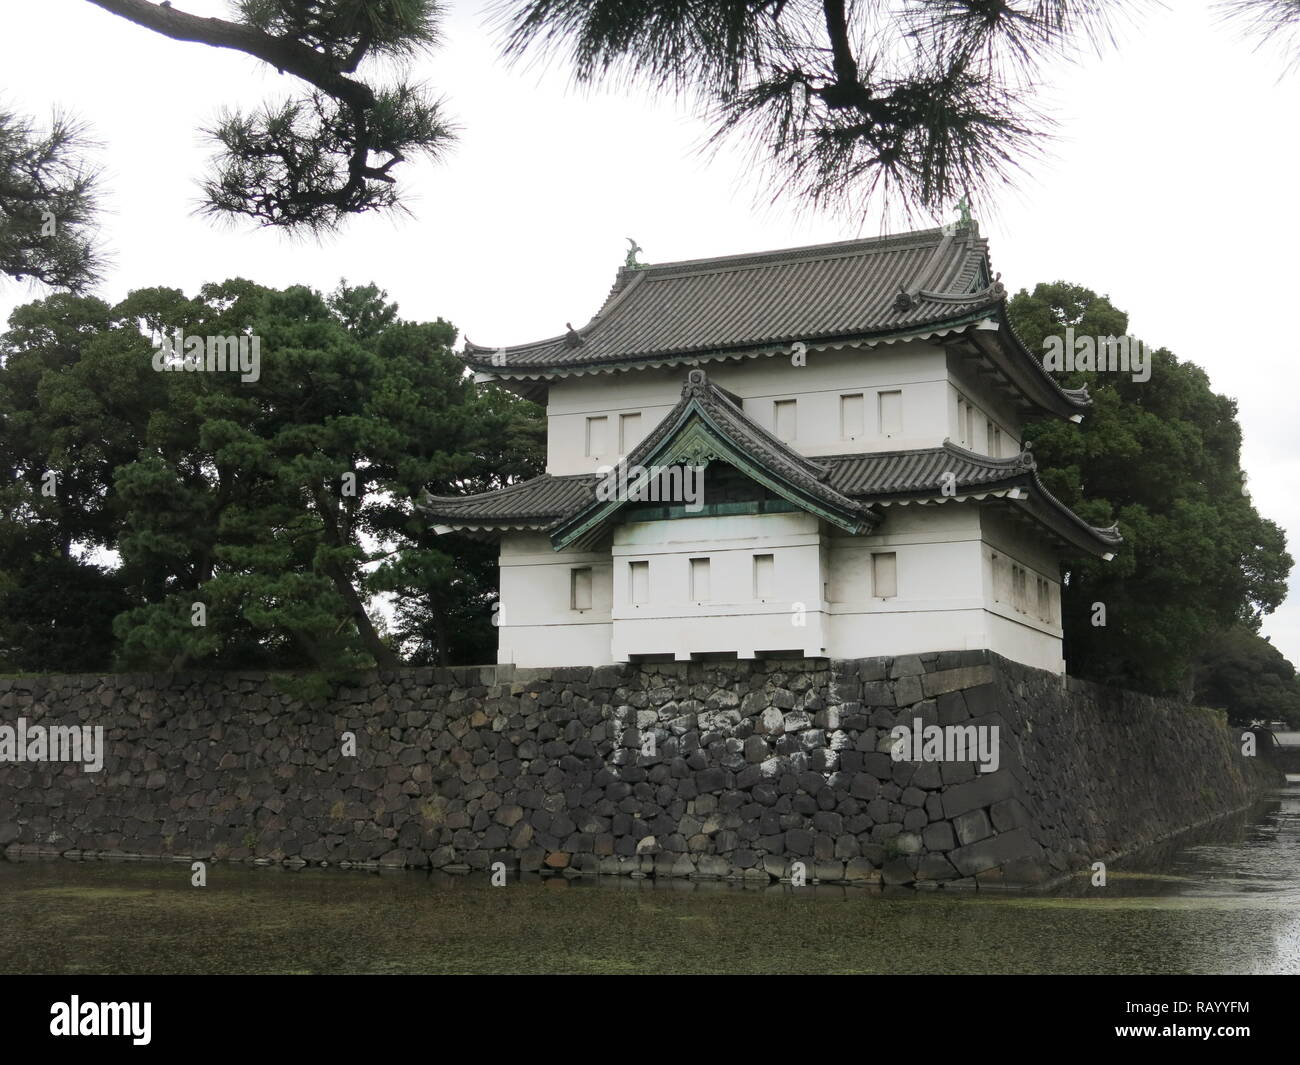 One of the guard towers atop the stone walls of the moat; Imperial Palace East Gardens, Tokyo, Japan Stock Photo